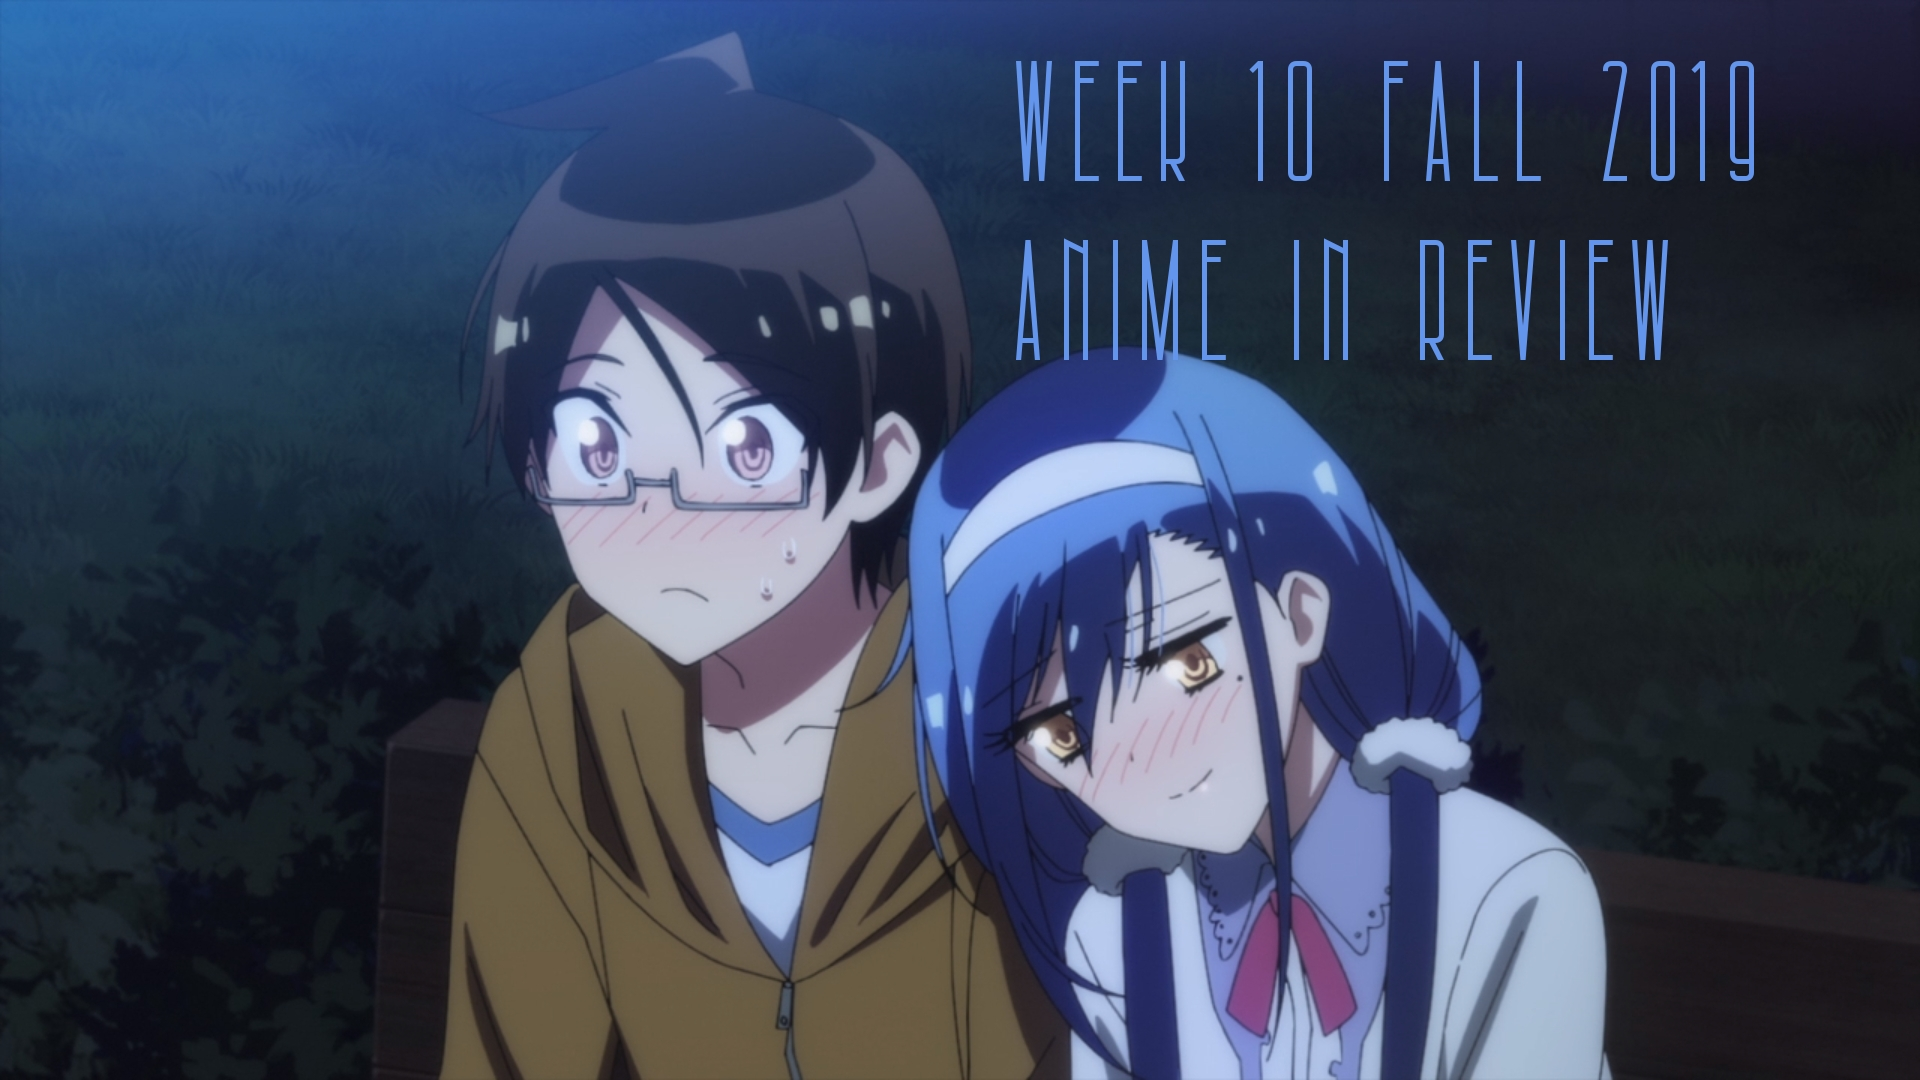 Week 10 of Fall 2019 Anime In Review